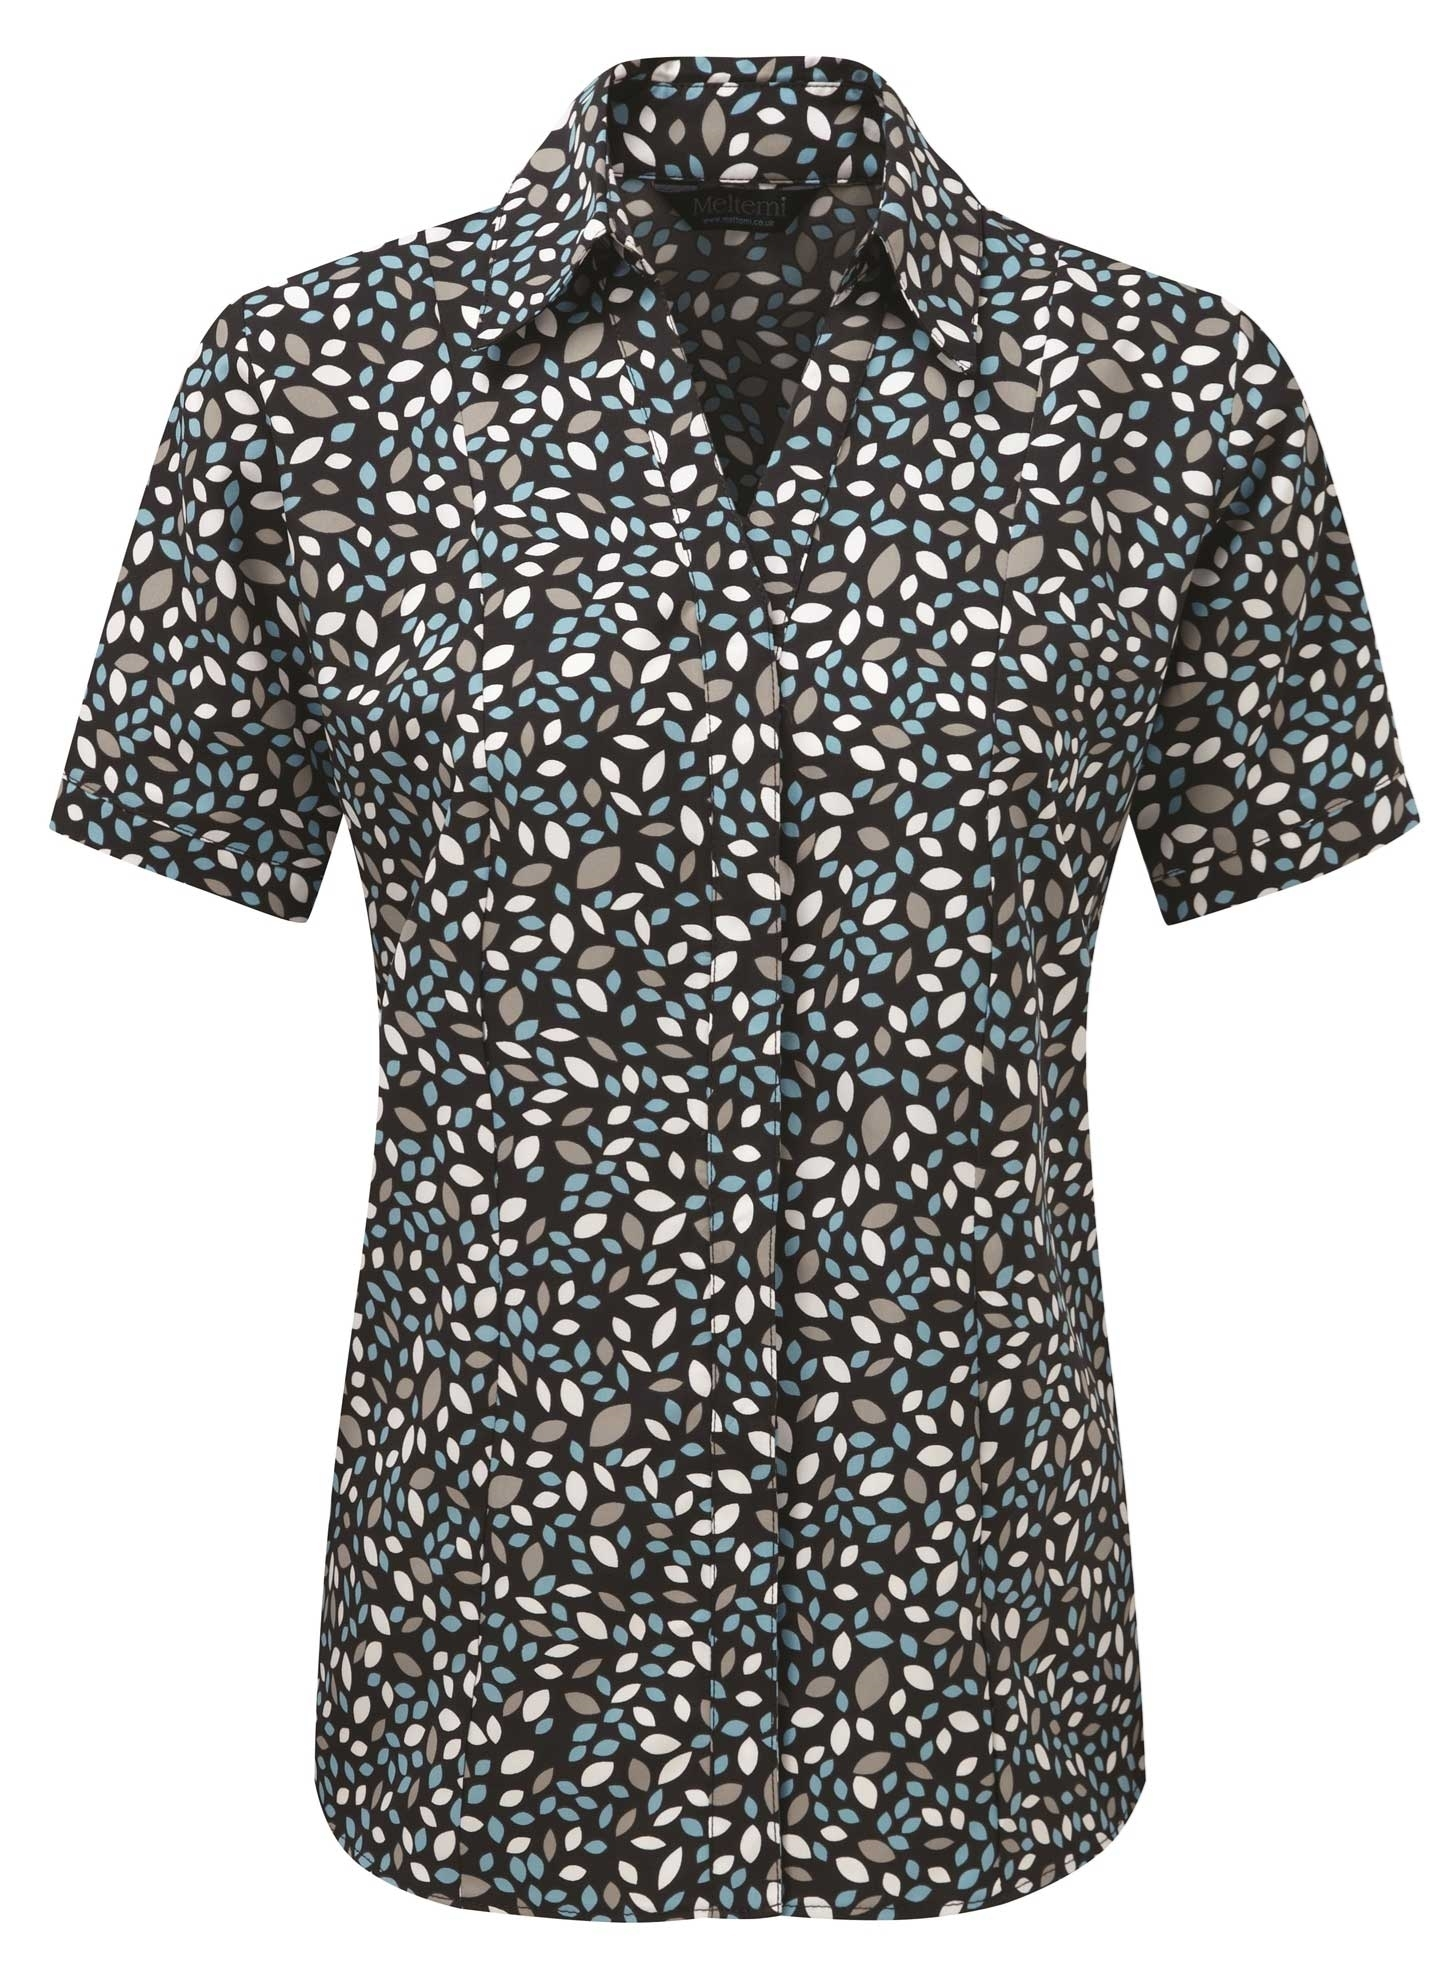 Picture of Semi-Fitted Coolweave Blouse - Navy/Turquoise Lauren Print